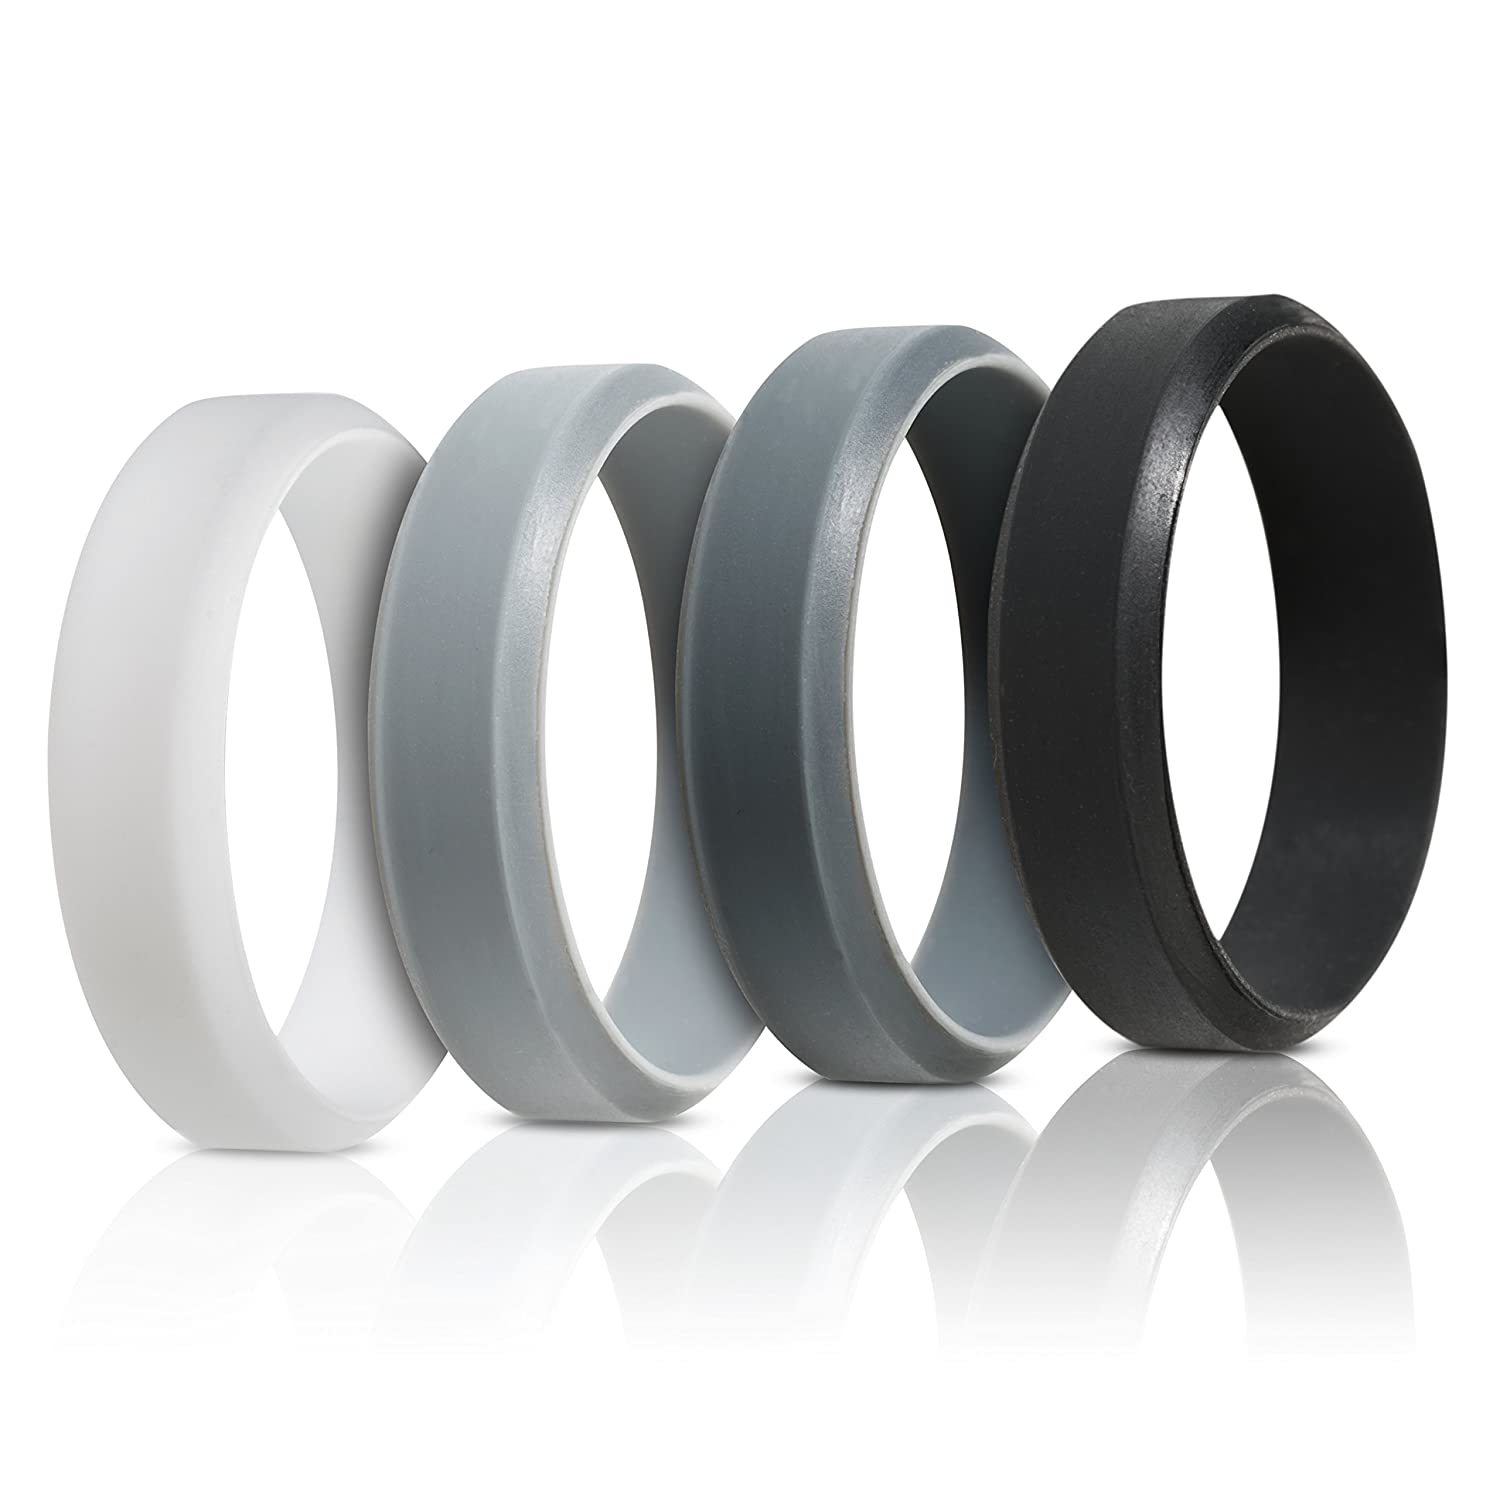 Amazon : Silicone Wedding Rings Wedding Bands For Men : Sports &  Outdoors